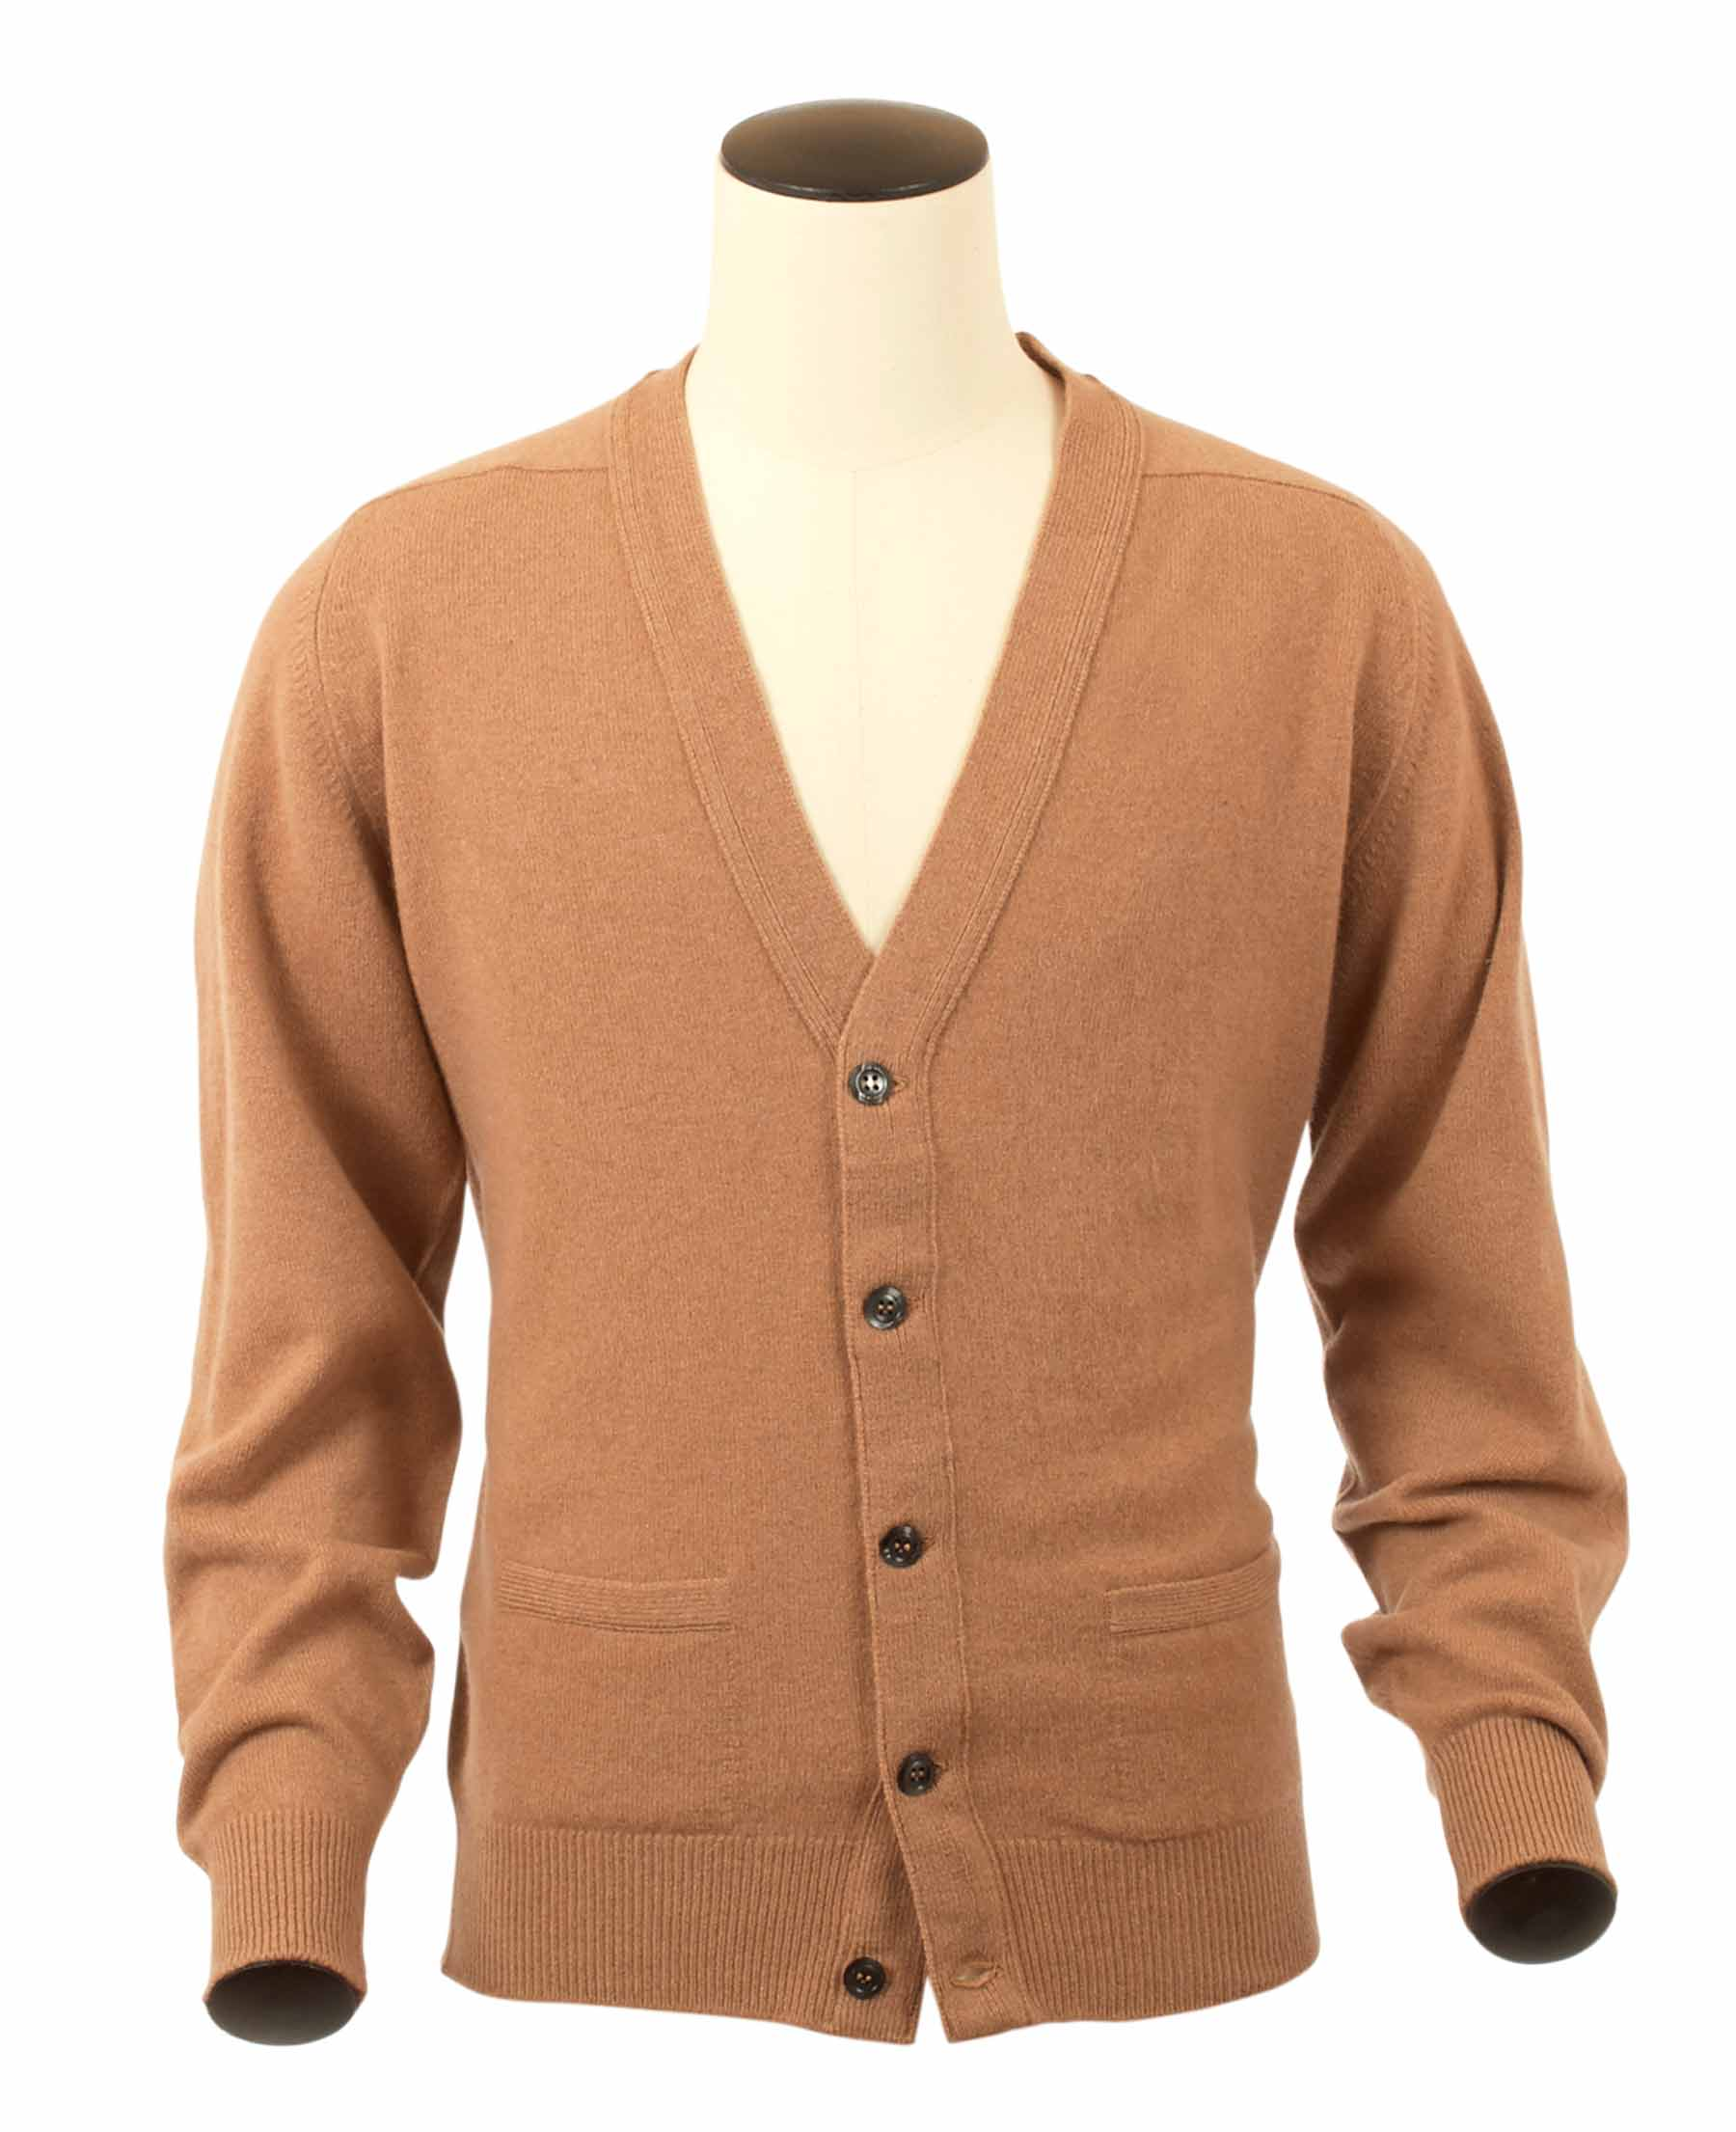 Bart, Couleur Camel, Gilet col V en 100% lambswool - Vêtements laine geelong